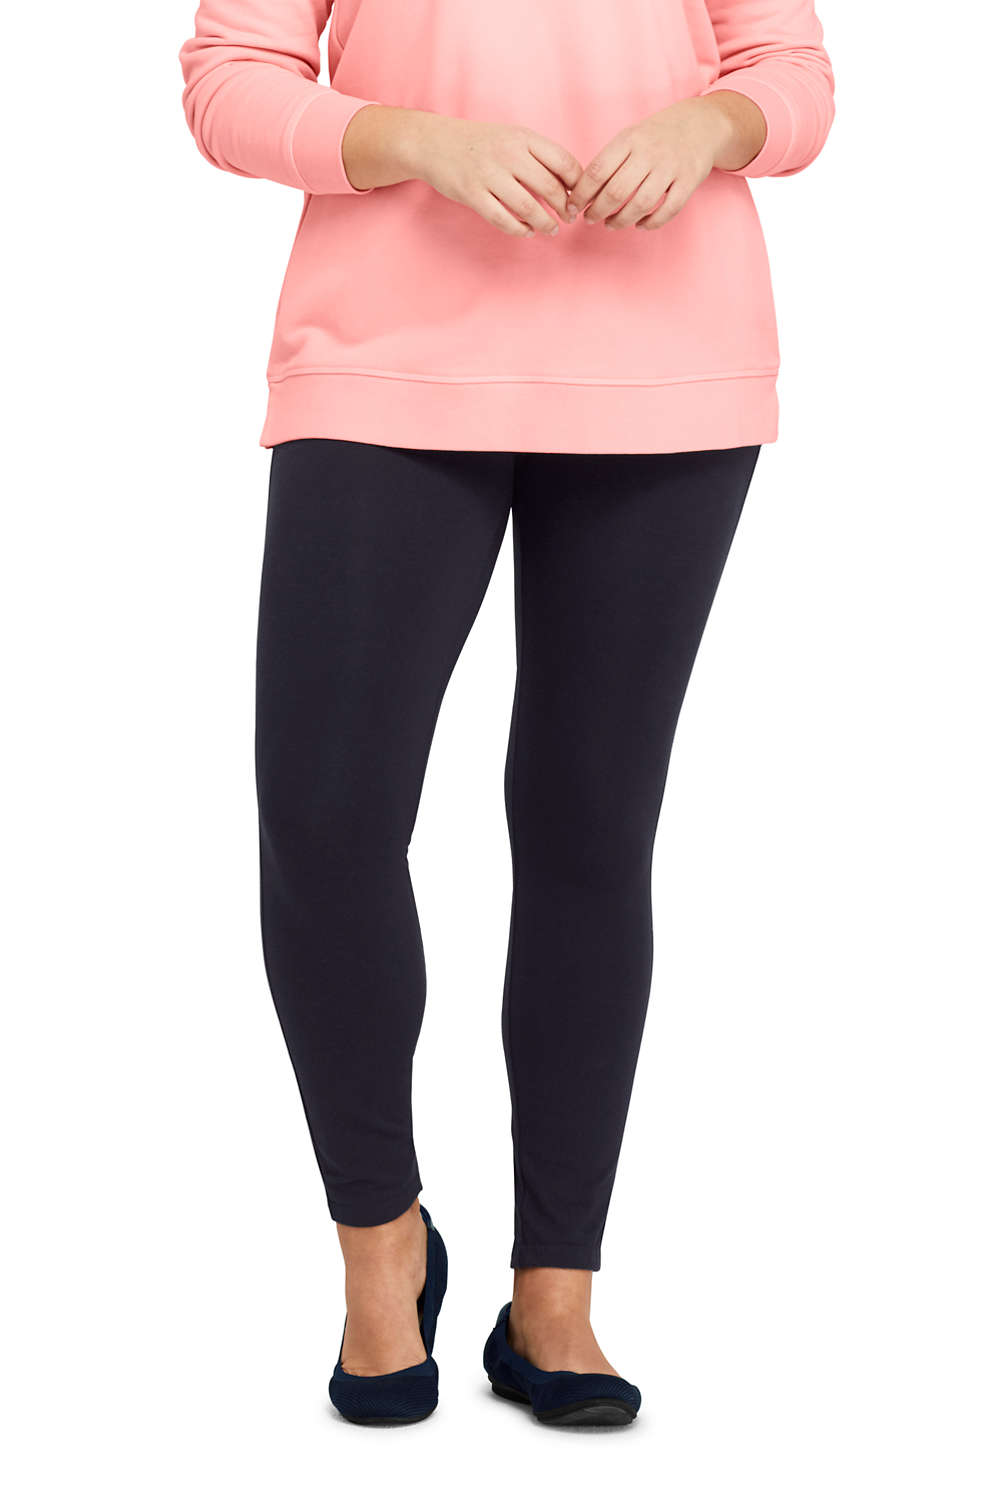 905a7066bf247 Women's Plus Size Starfish Leggings from Lands' End